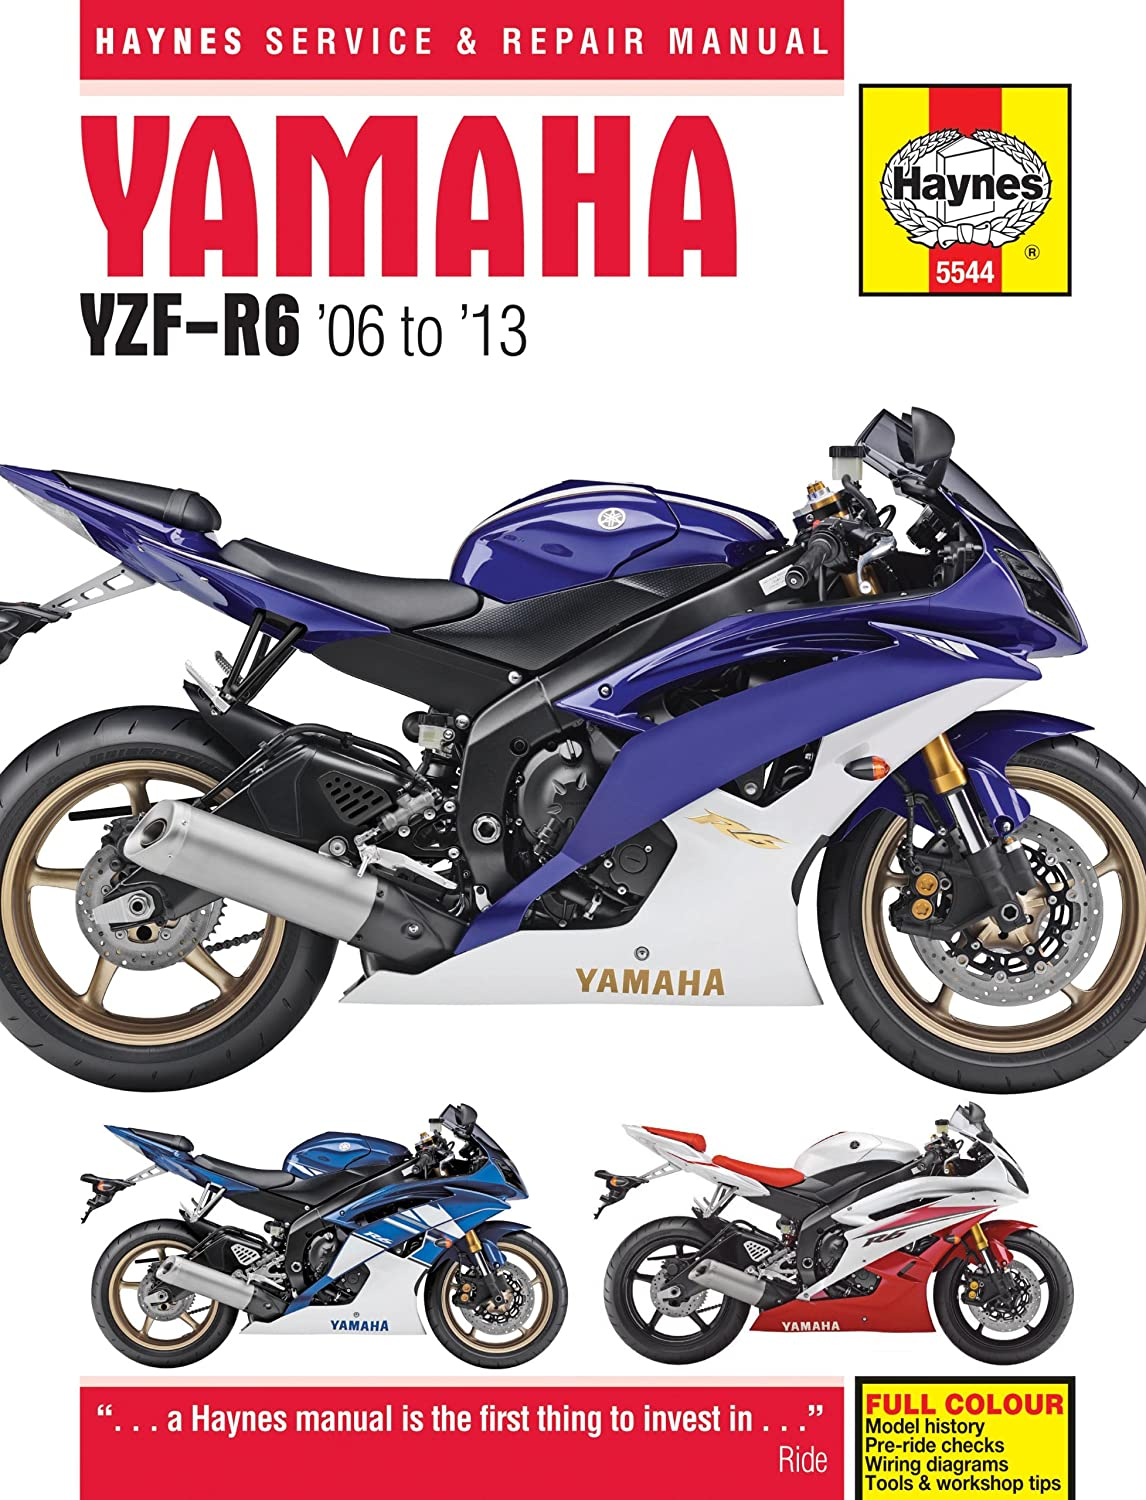 Yamaha YZF R6 Repair Manual Haynes Service Manual Workshop Manual  2006-2013: Amazon.co.uk: Car & Motorbike